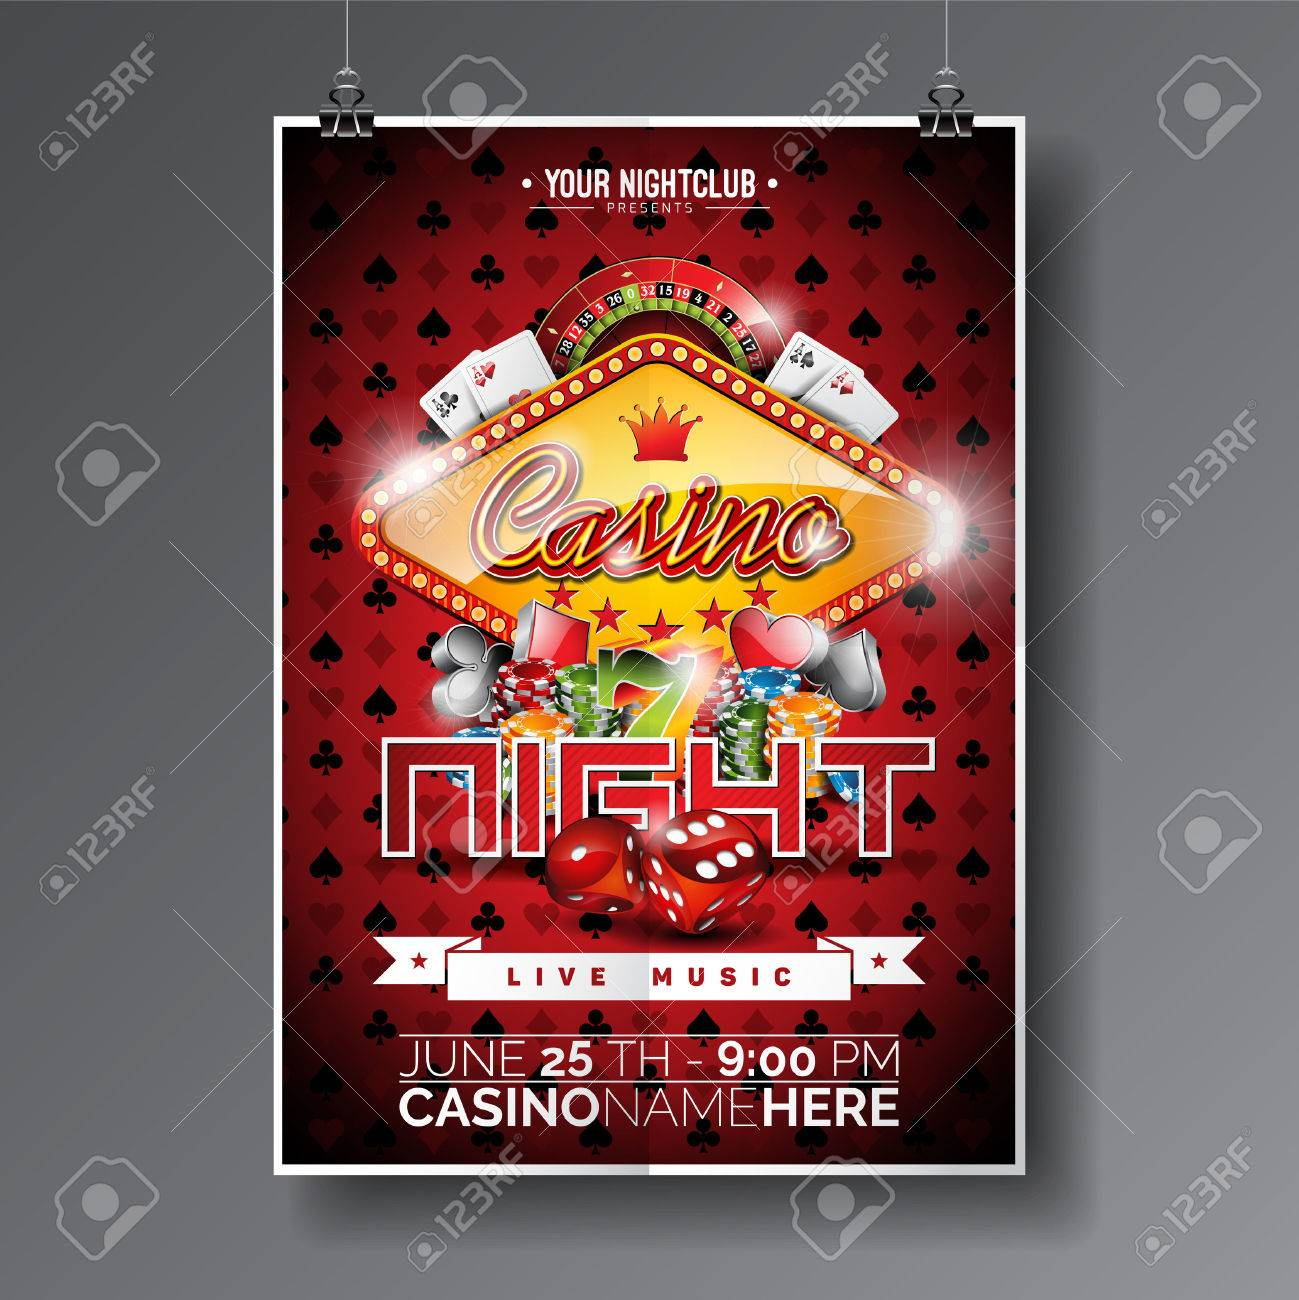 Vector Party Flyer design on a Casino theme with chips and game cards on dark symbols background. - 56737743